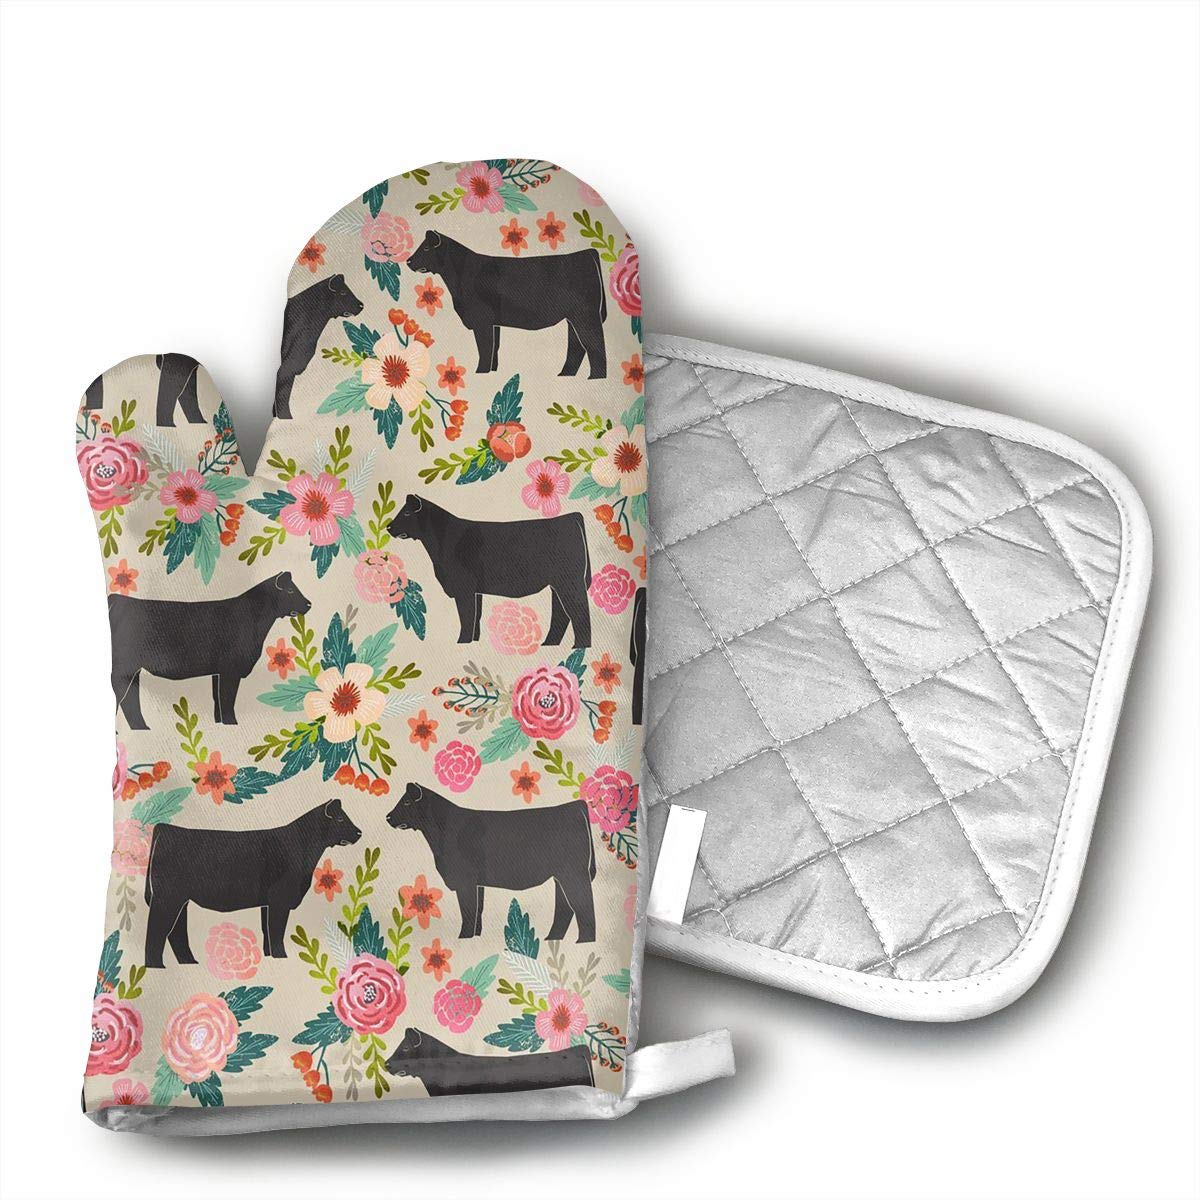 HEPKL Oven Mitts and Potholders Show Steer Cows Farm Barn Non-Slip Grip Heat Resistant Oven Gloves BBQ Cooking Baking Grilling